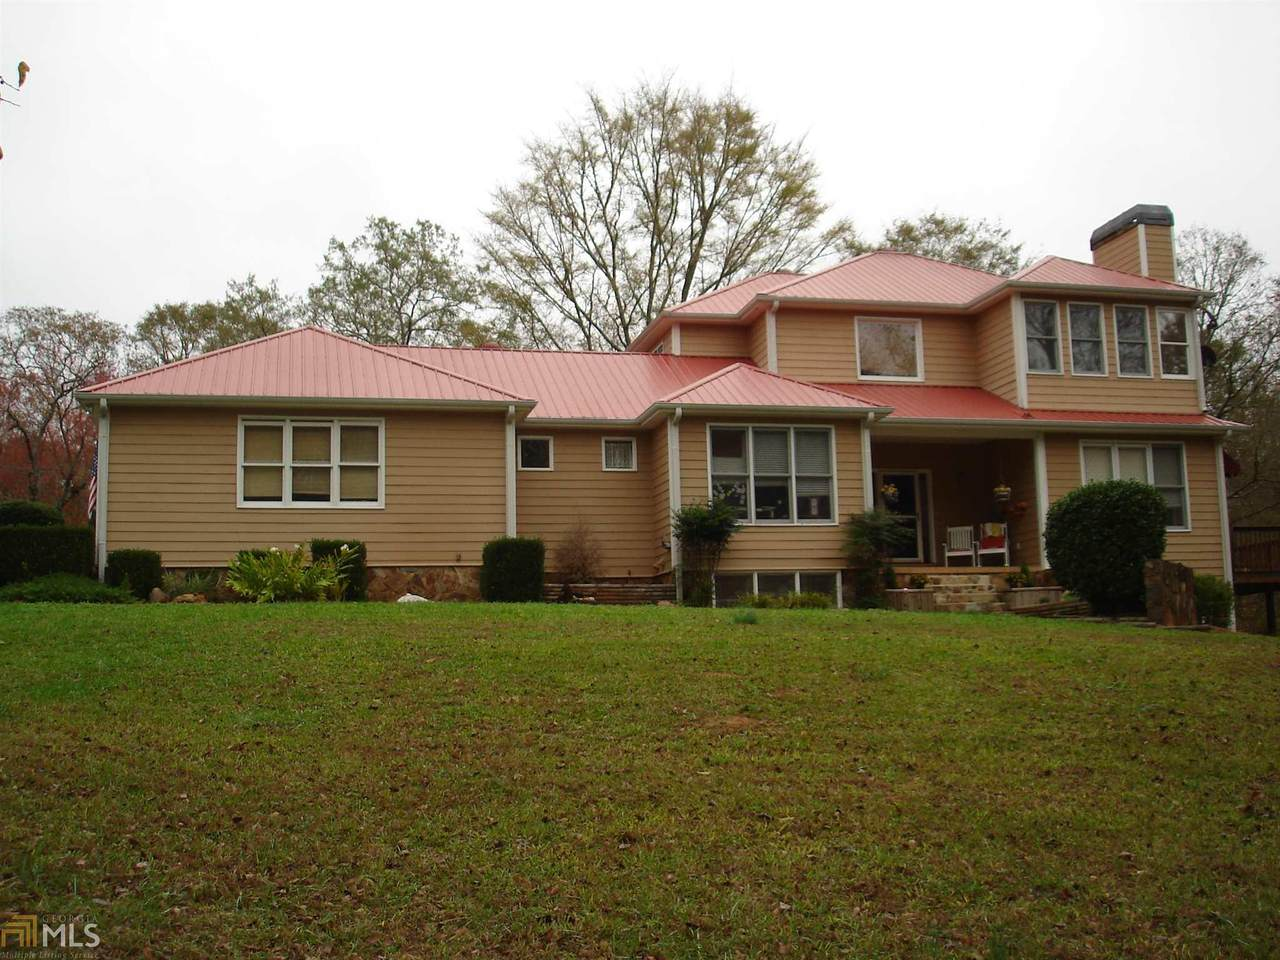 1233 Grandma Branch Rd - Photo 1